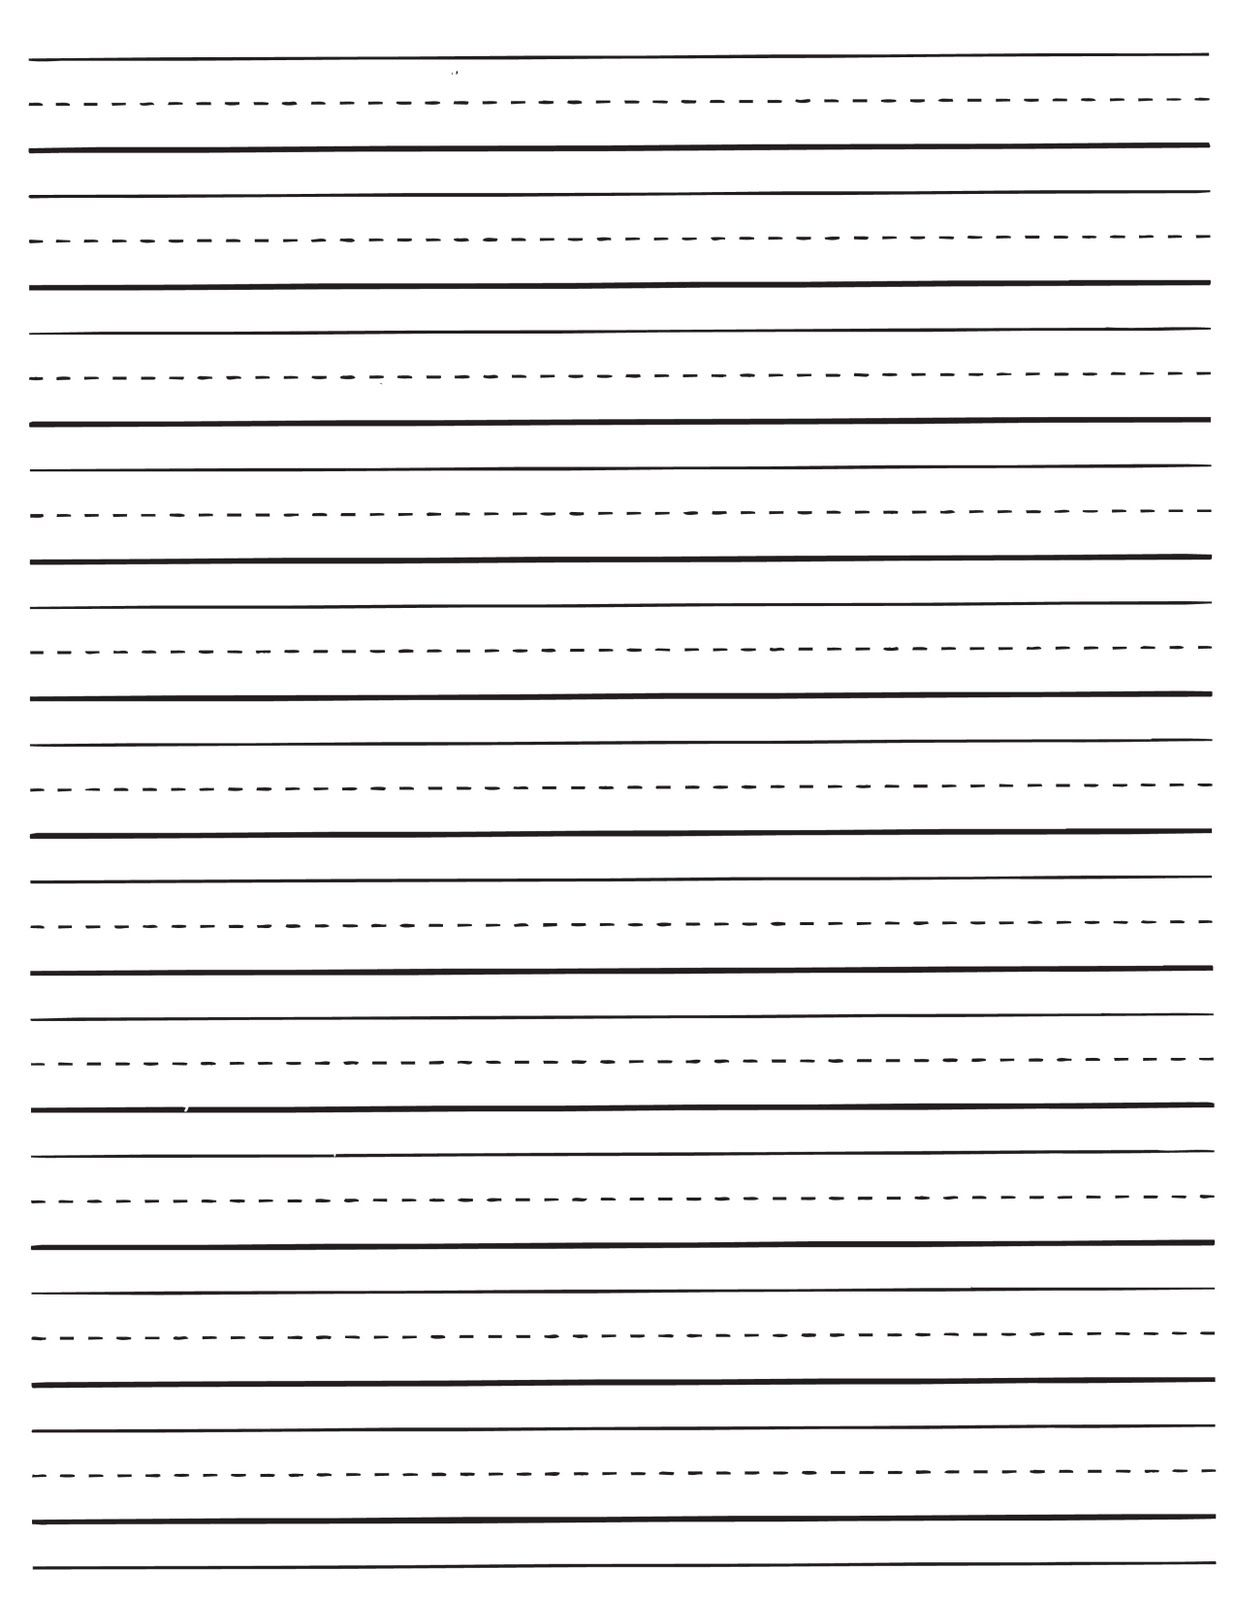 Lined Paper For Projector